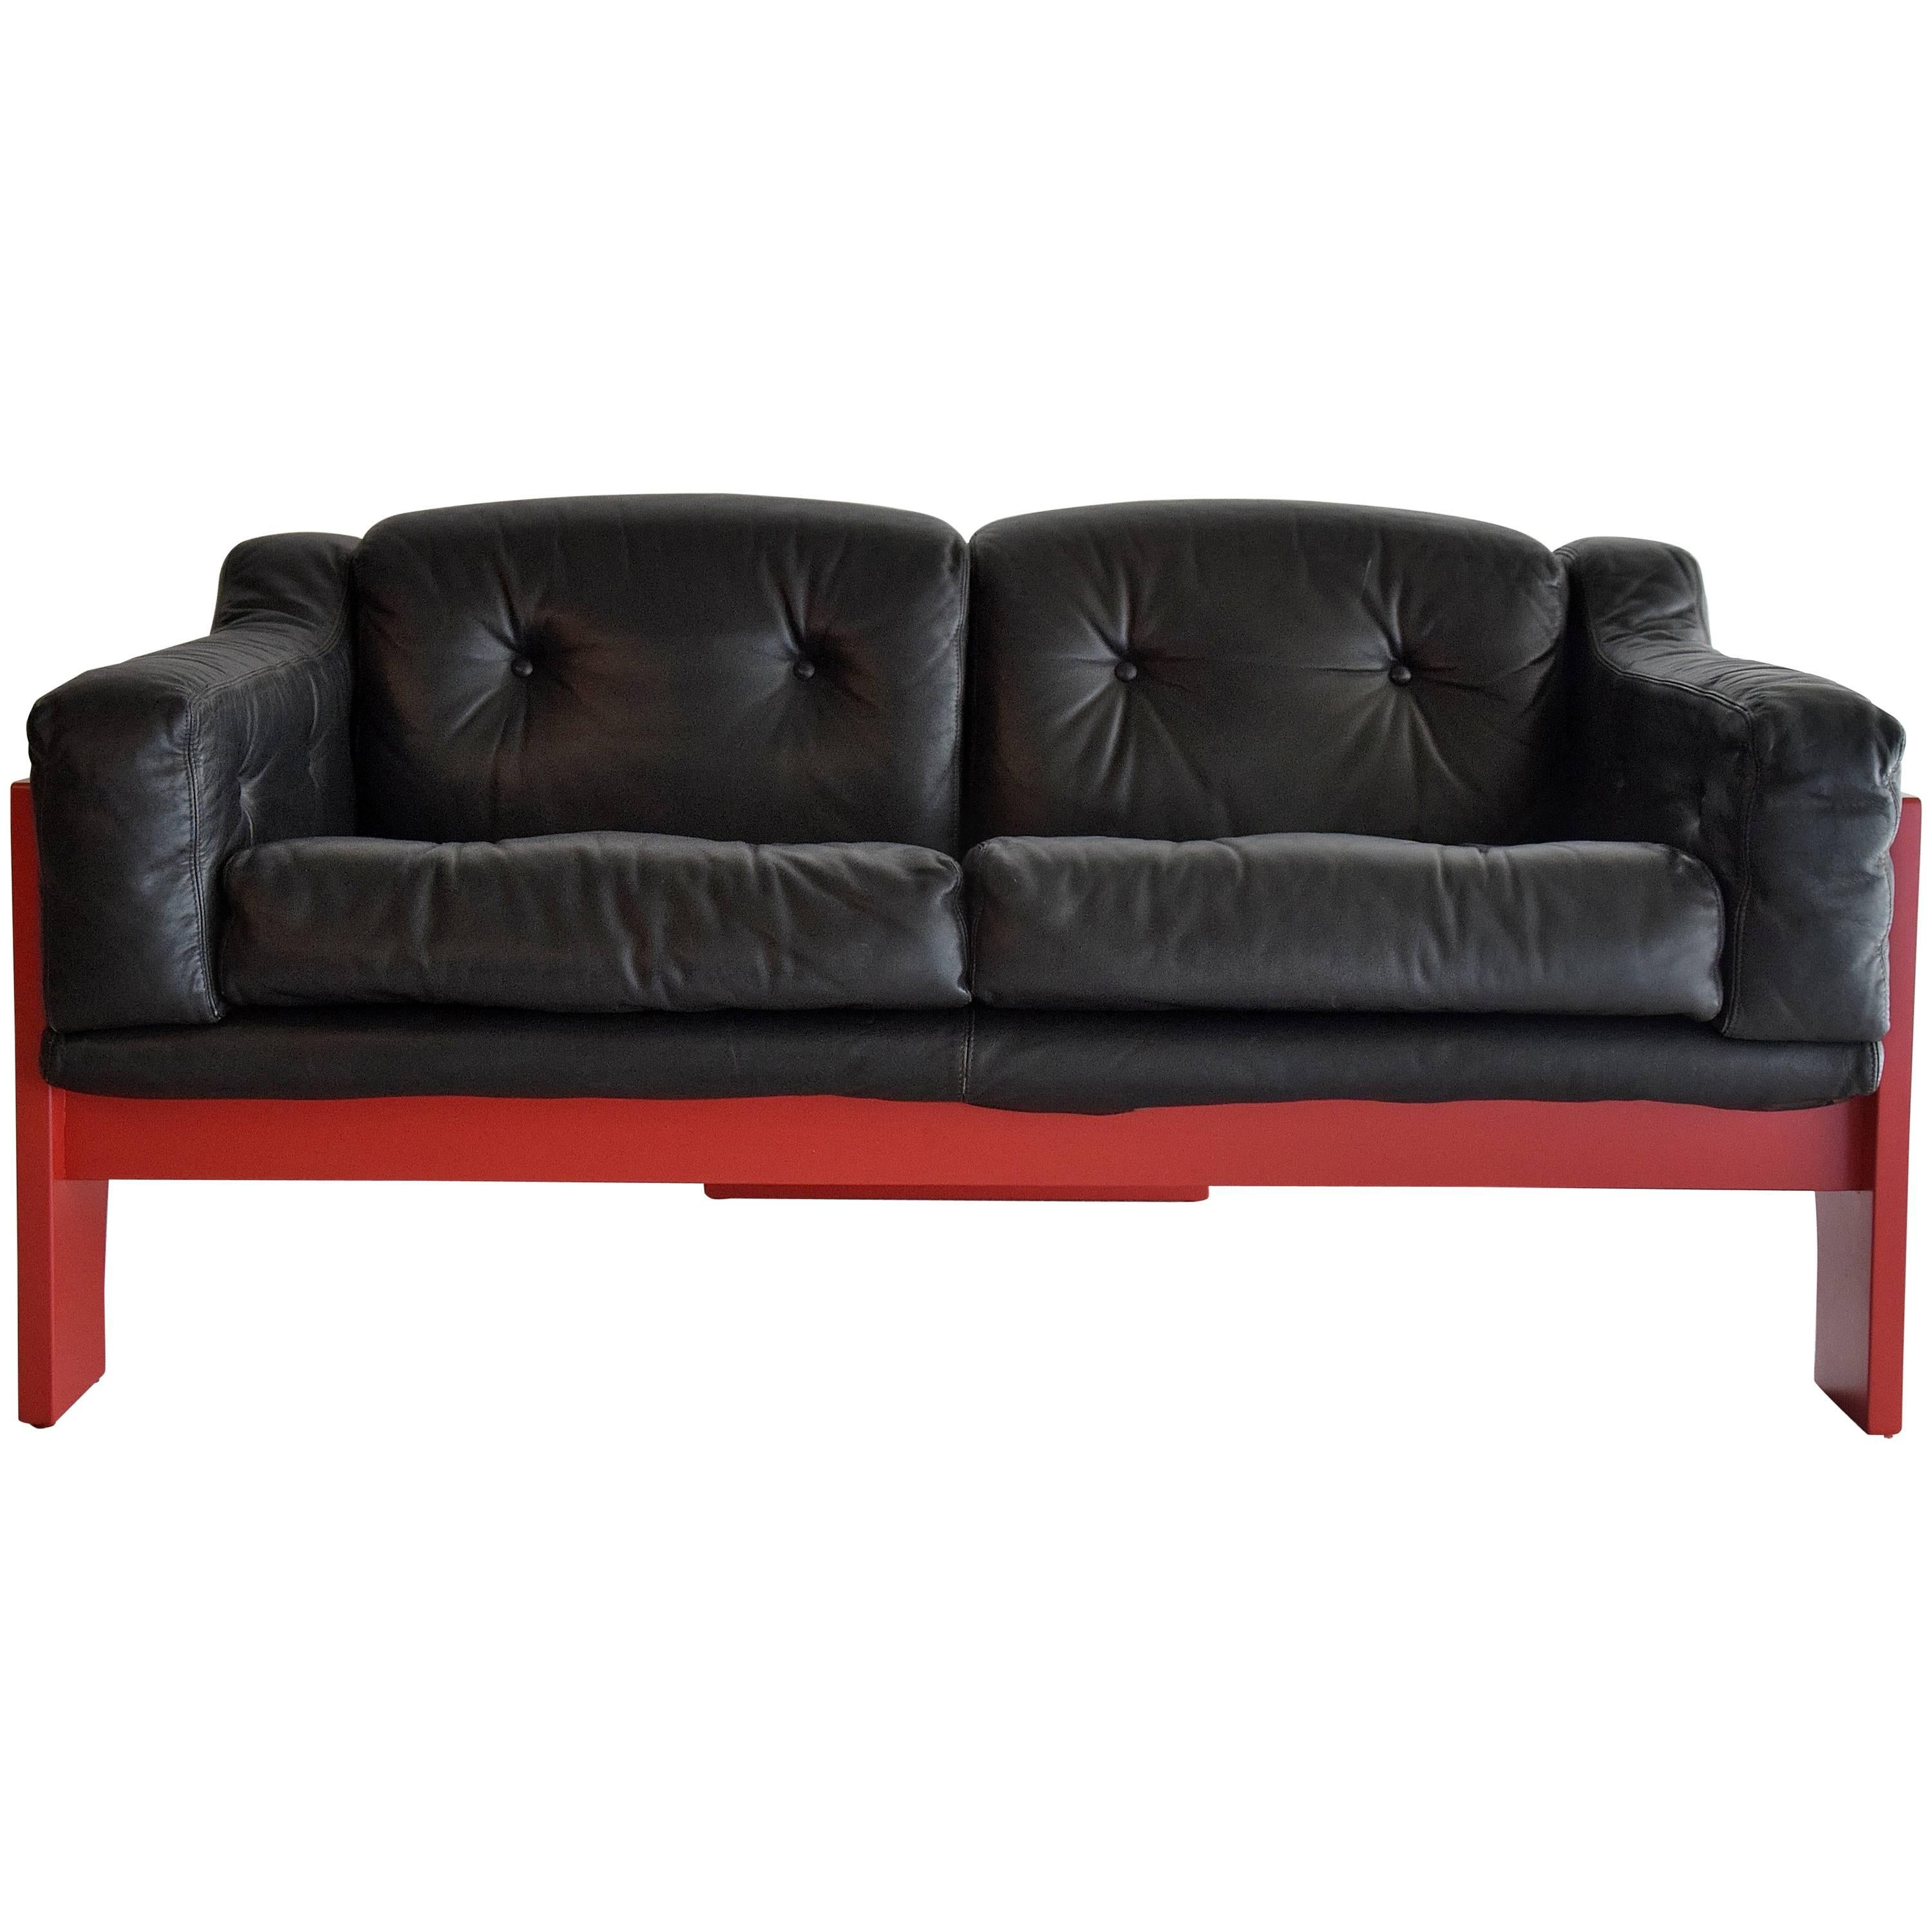 Mid Century Red and Black Sofa by Claudio Salocchi for Sormani